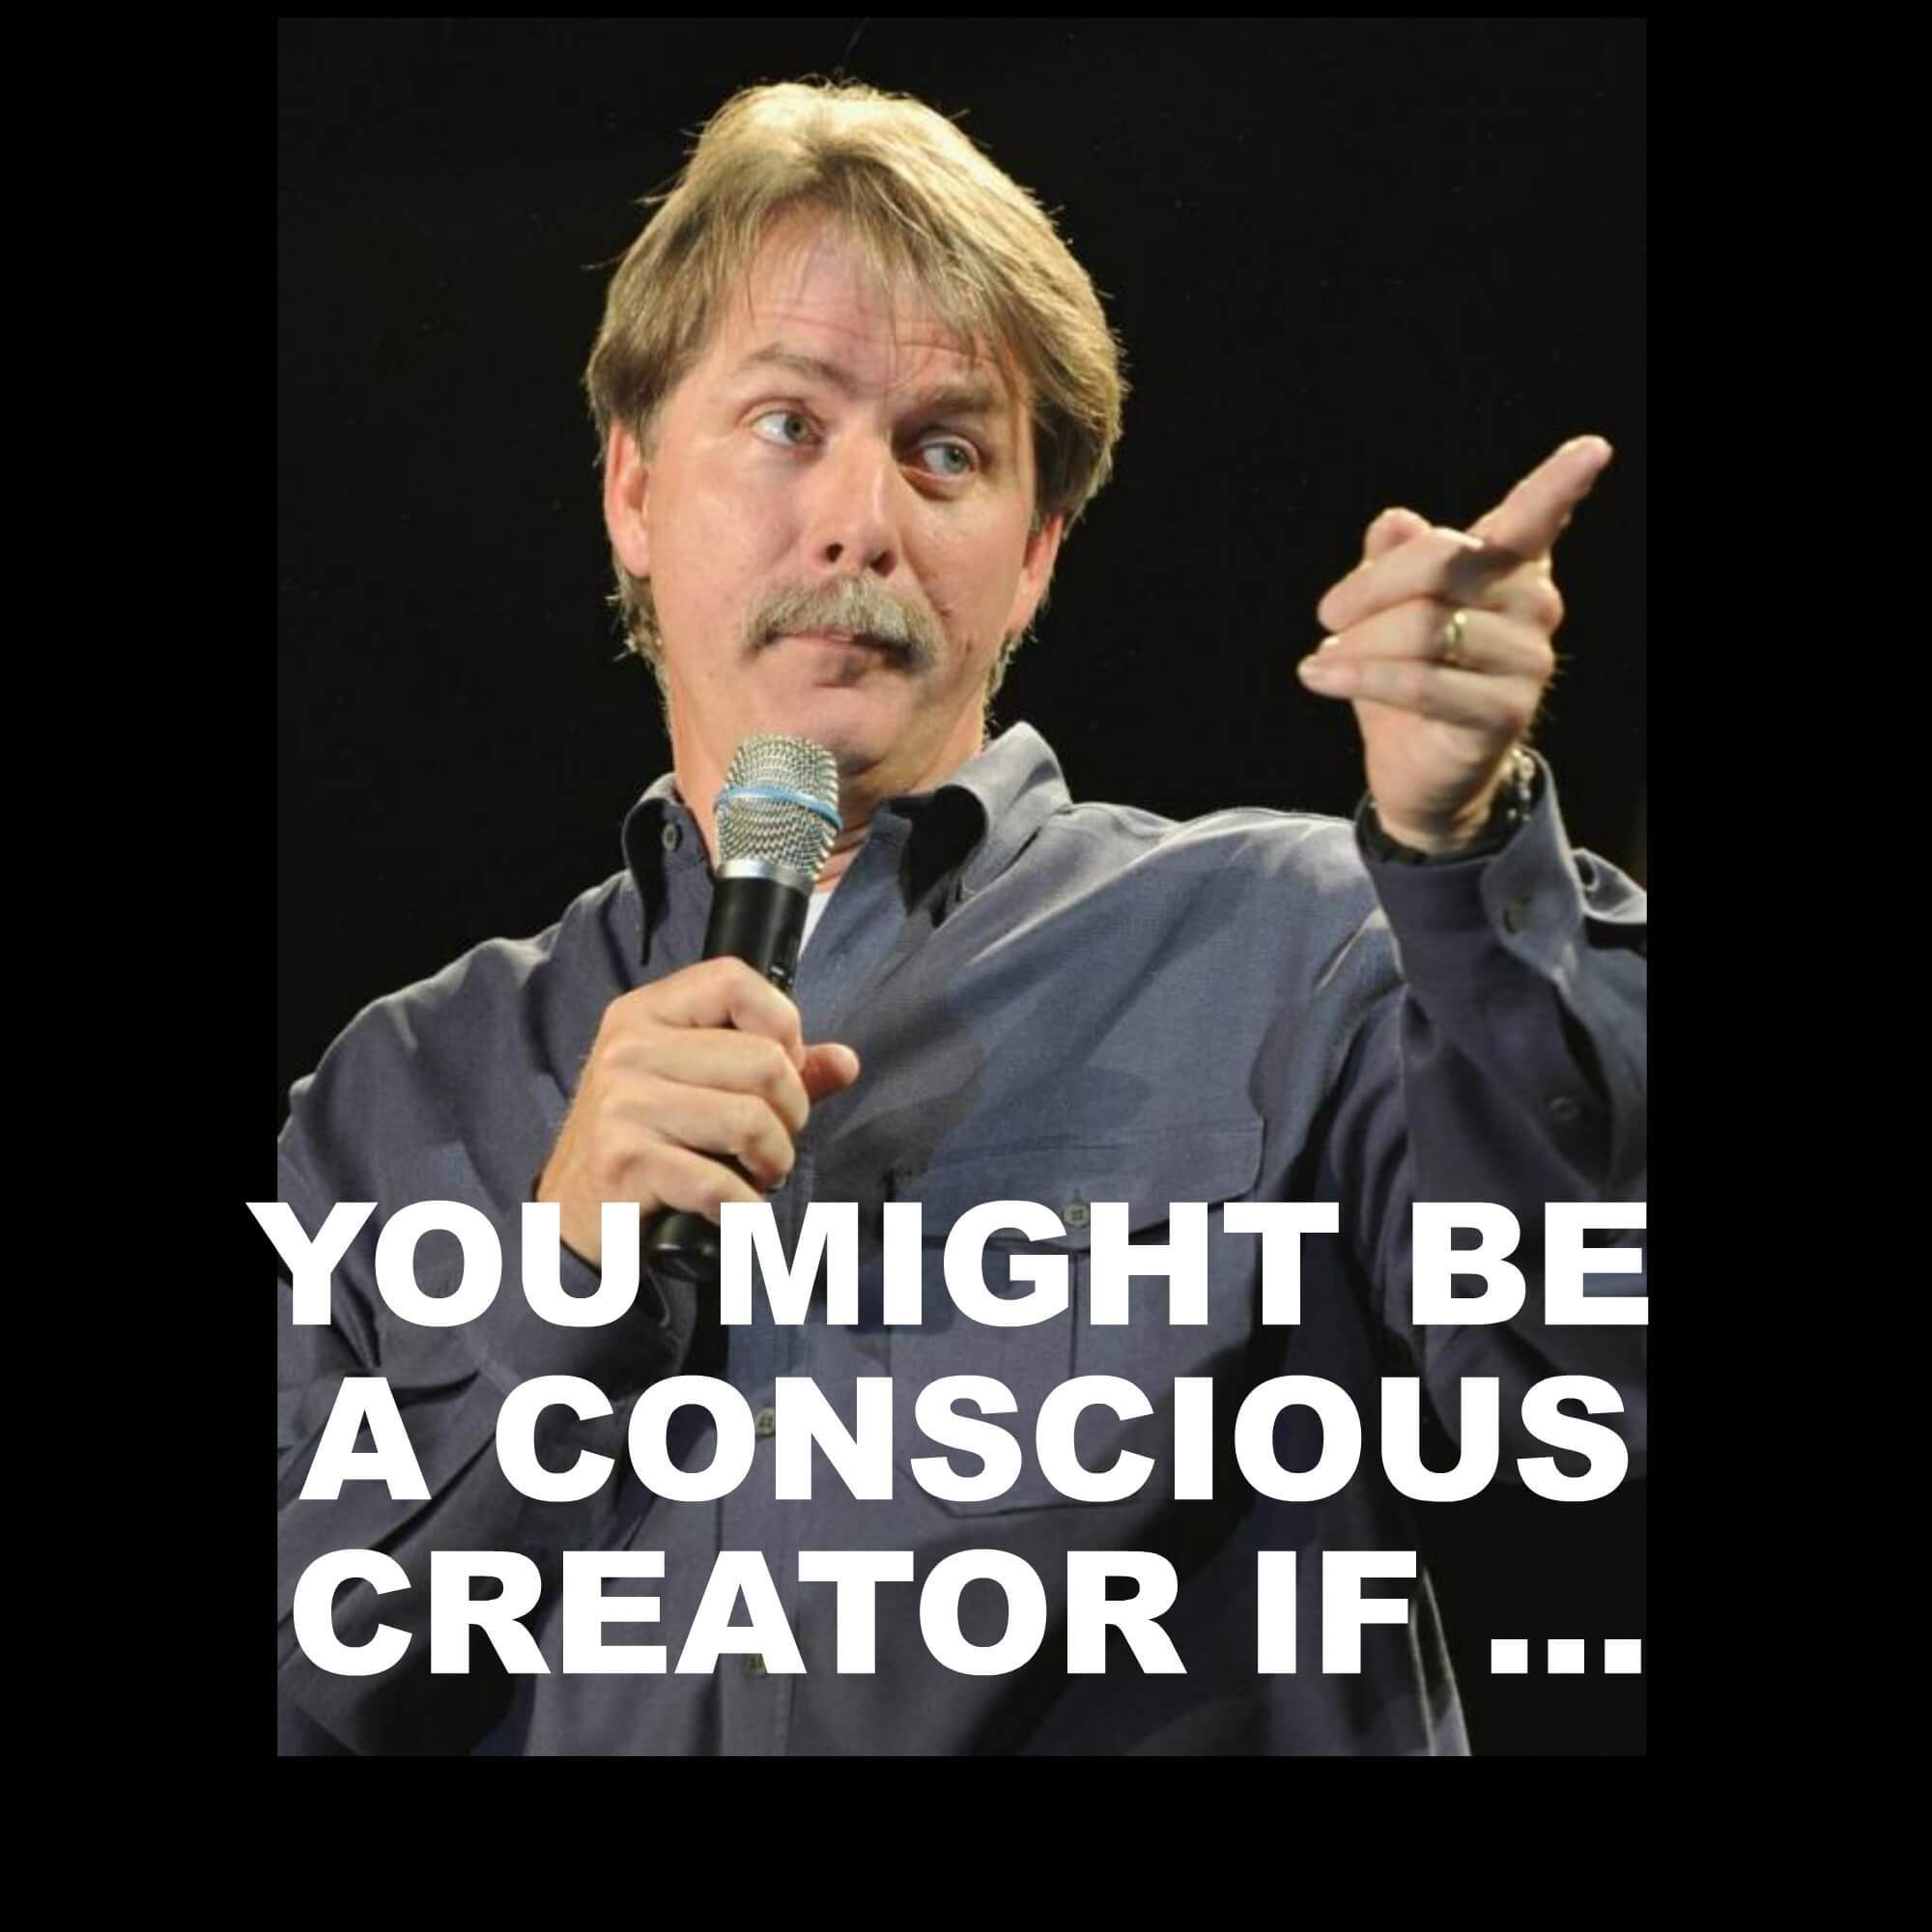 You Might Be a Conscious Creator If ... (7 Tells of Conscious Creation)